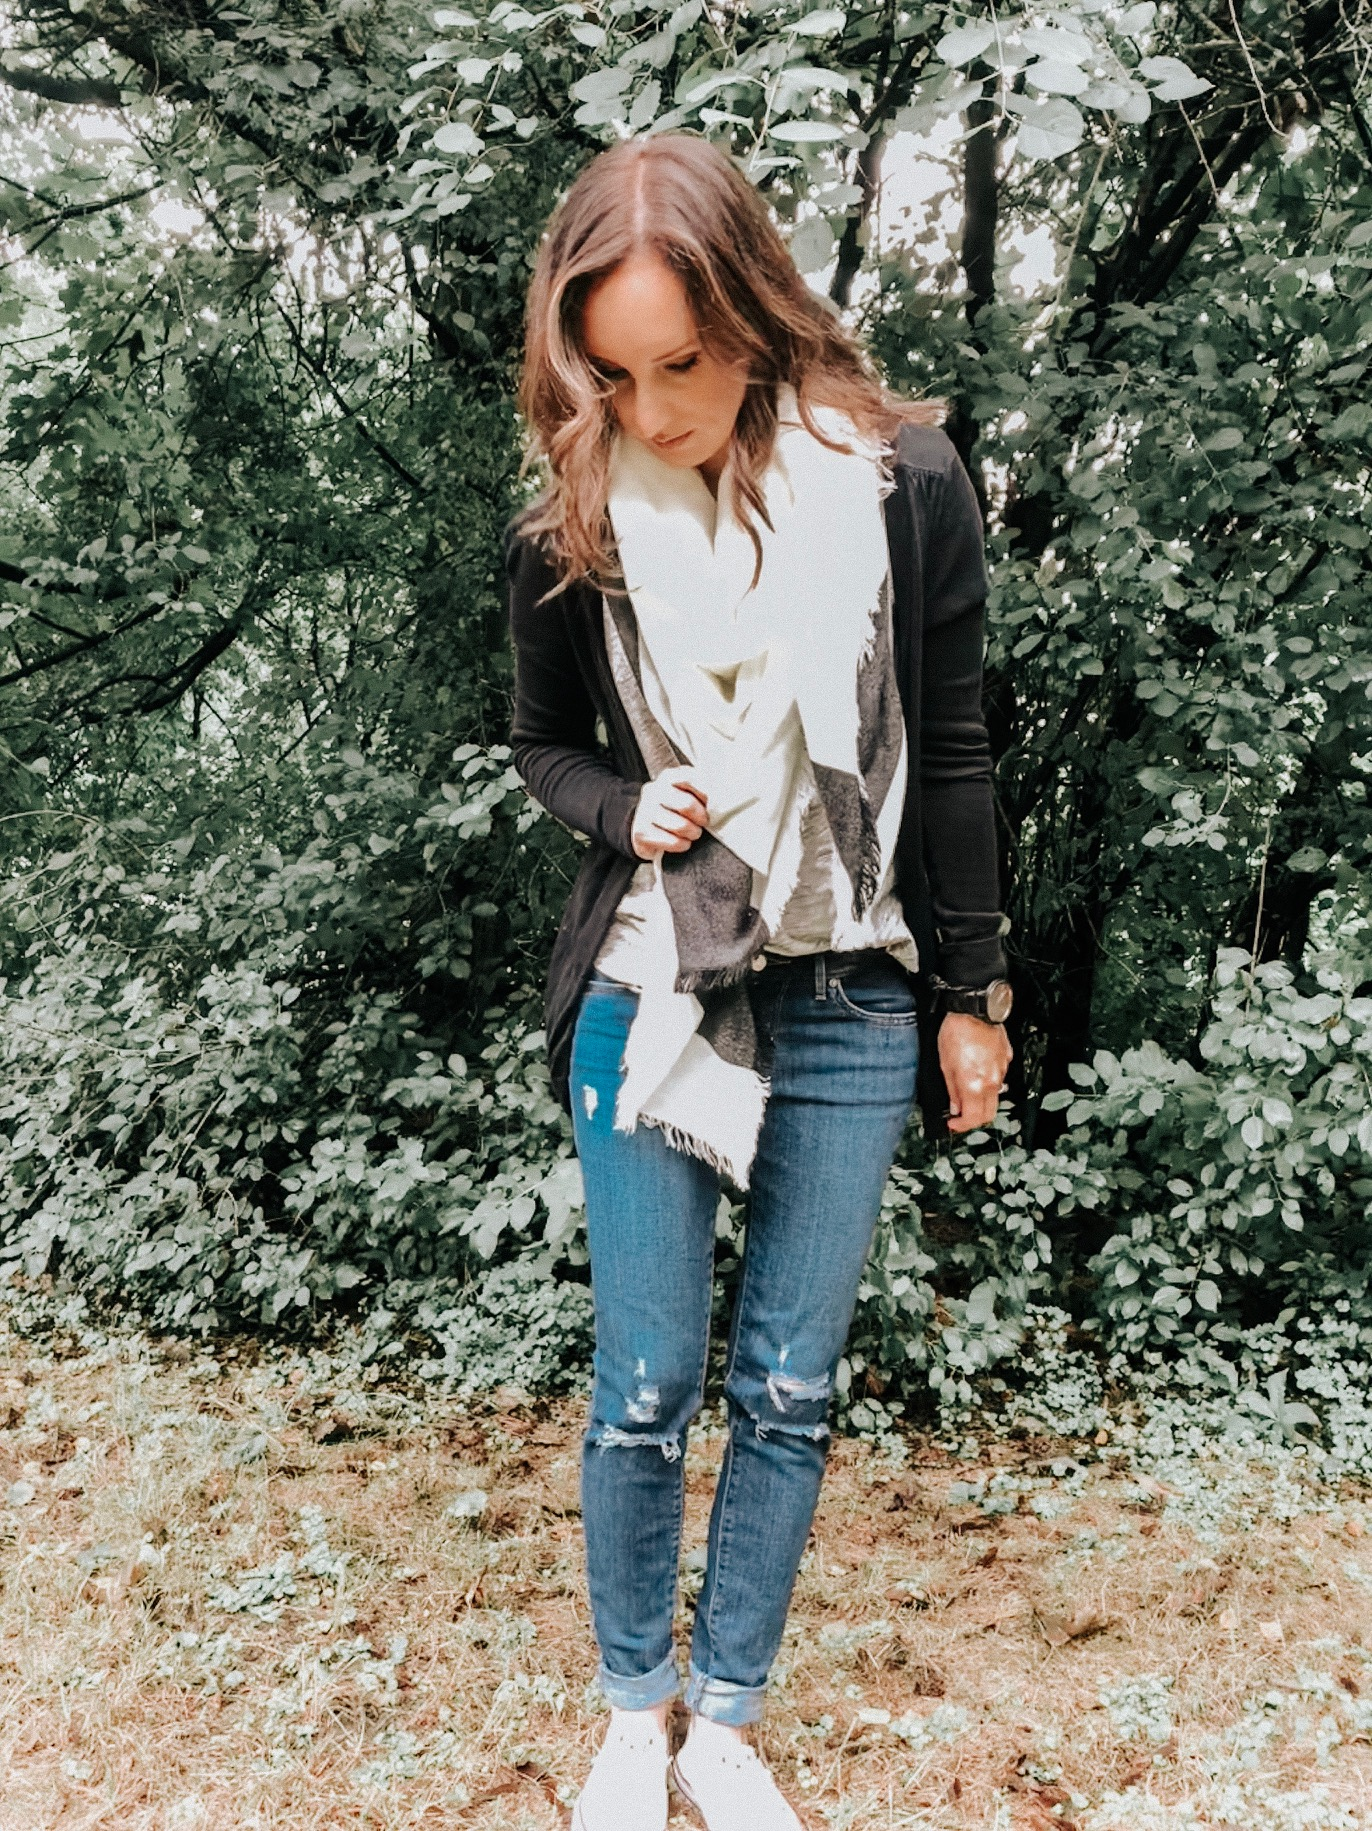 Must have items to complete your fall looks - Blanket scarf #fallstyle #fallfashion #scarves